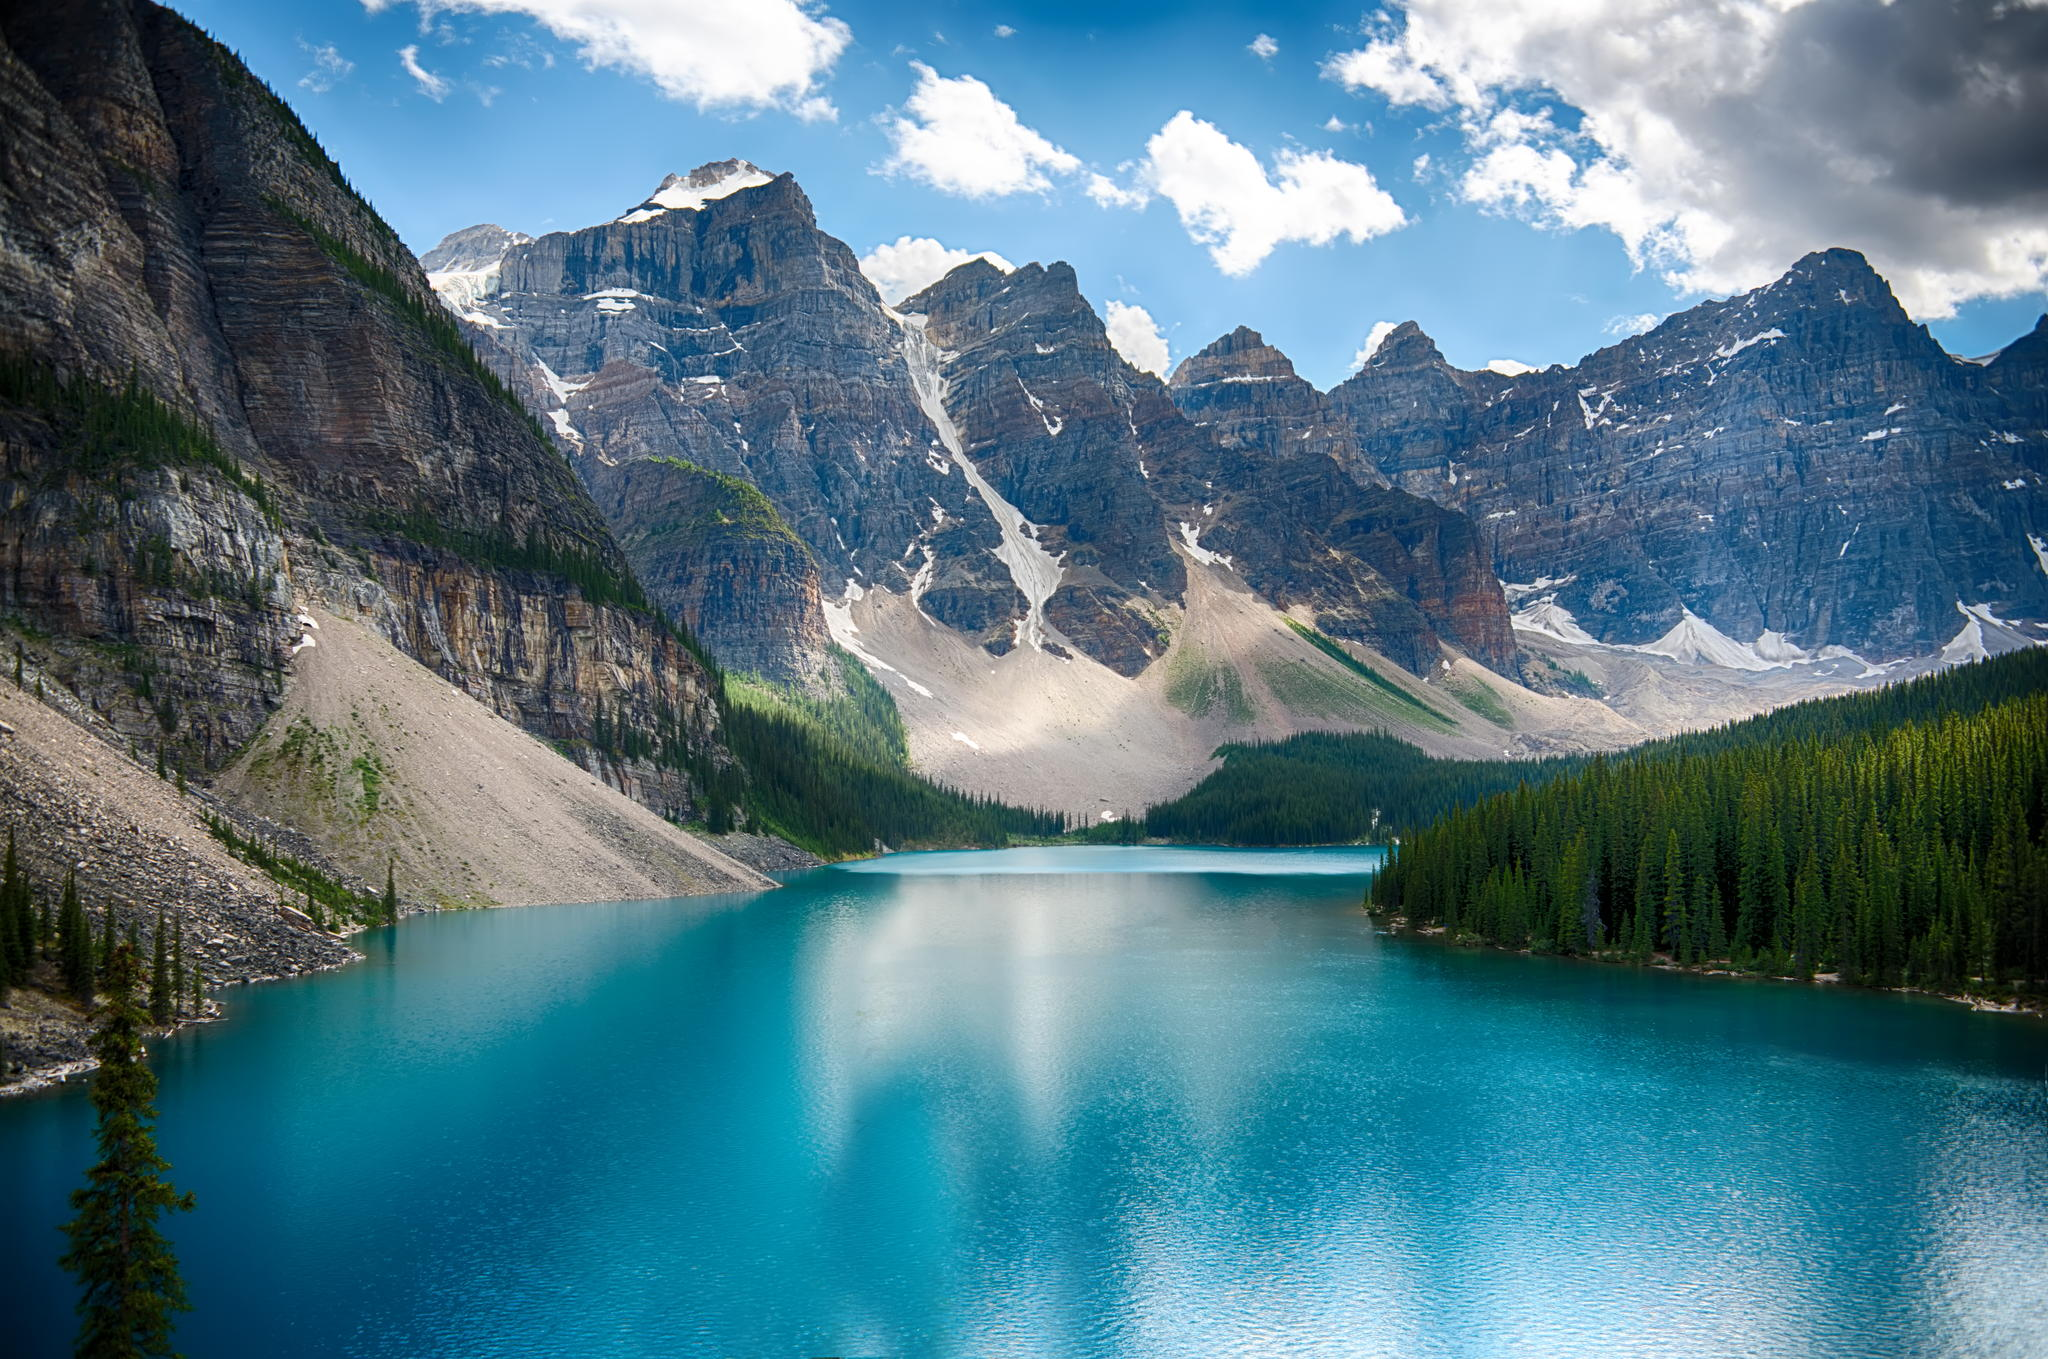 Moraine Lake in Banff National Park, 2012.